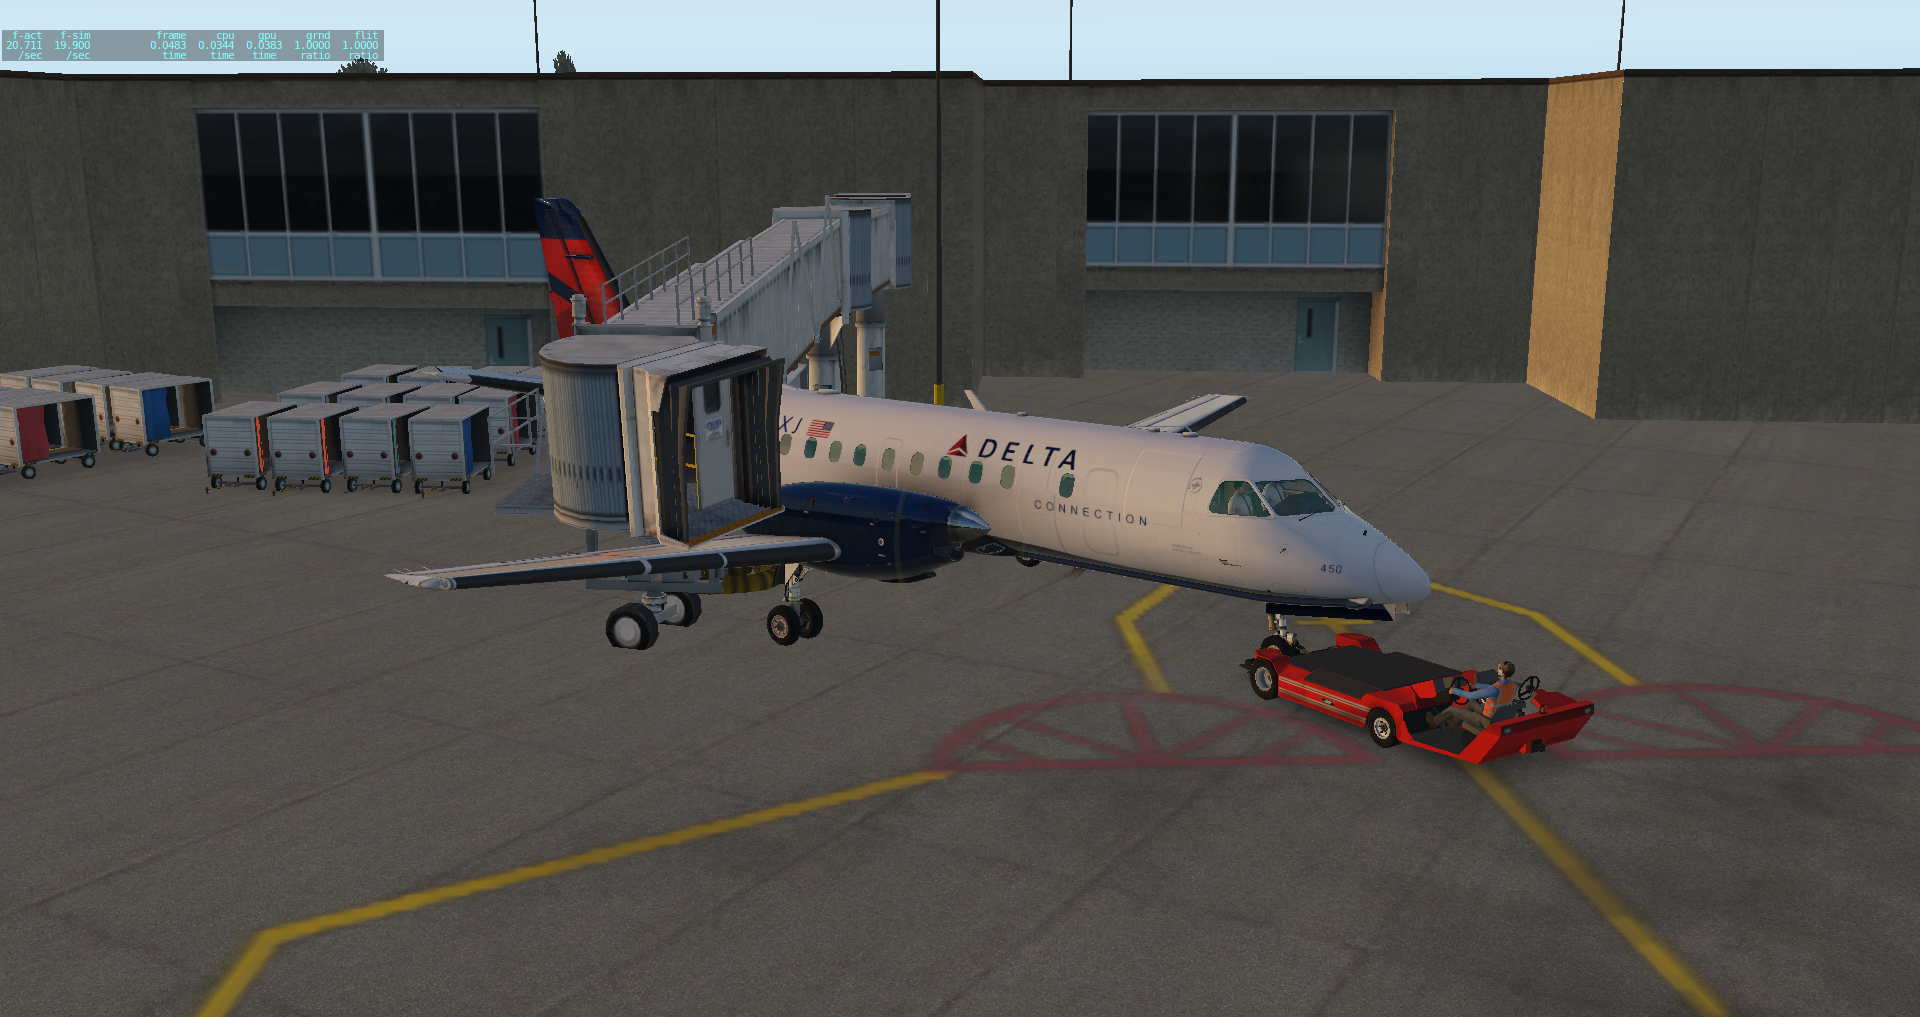 Better pushback issues with Saab - Saab 340A - X-Pilot